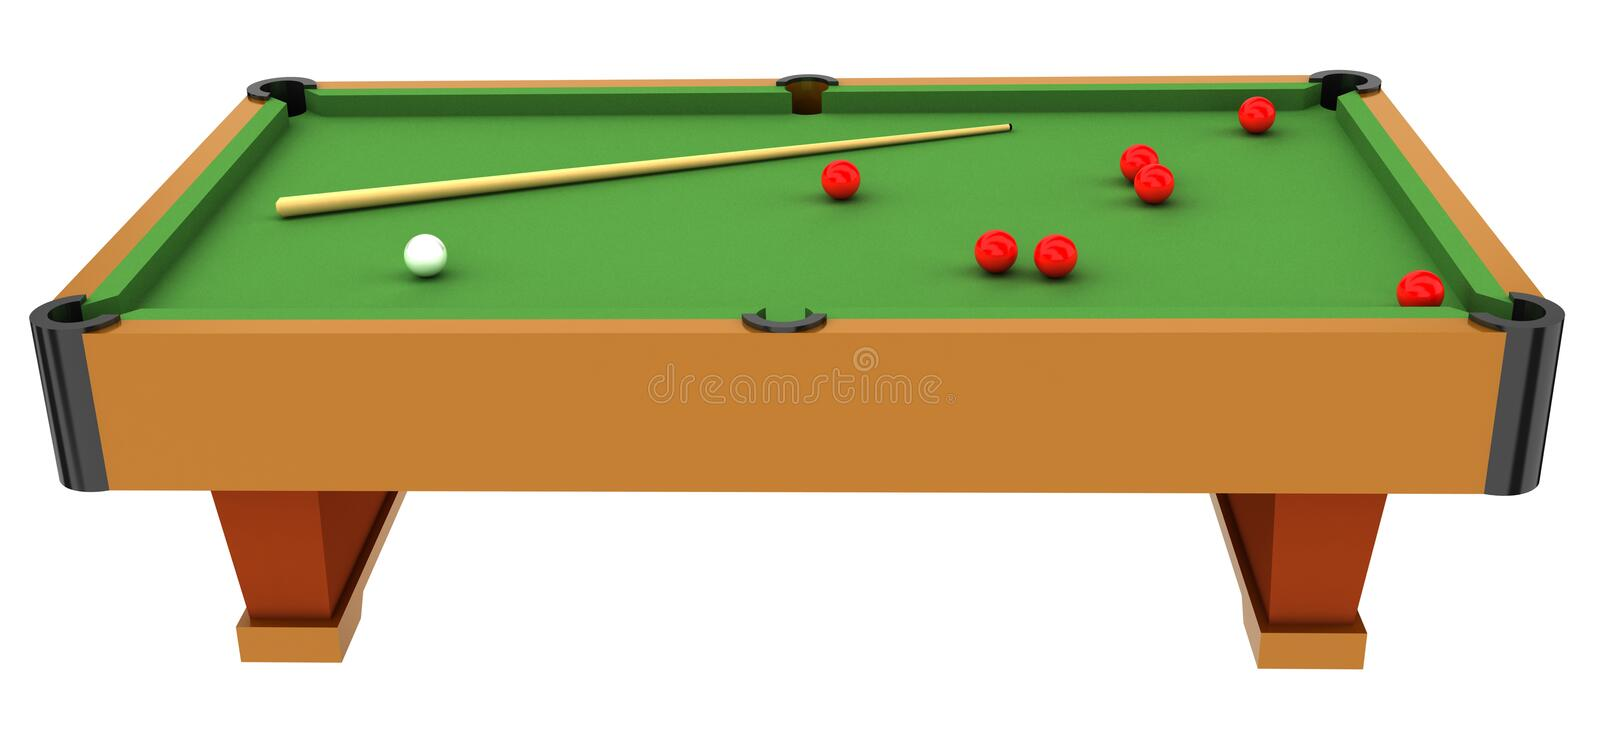 Snooker table stock illustration